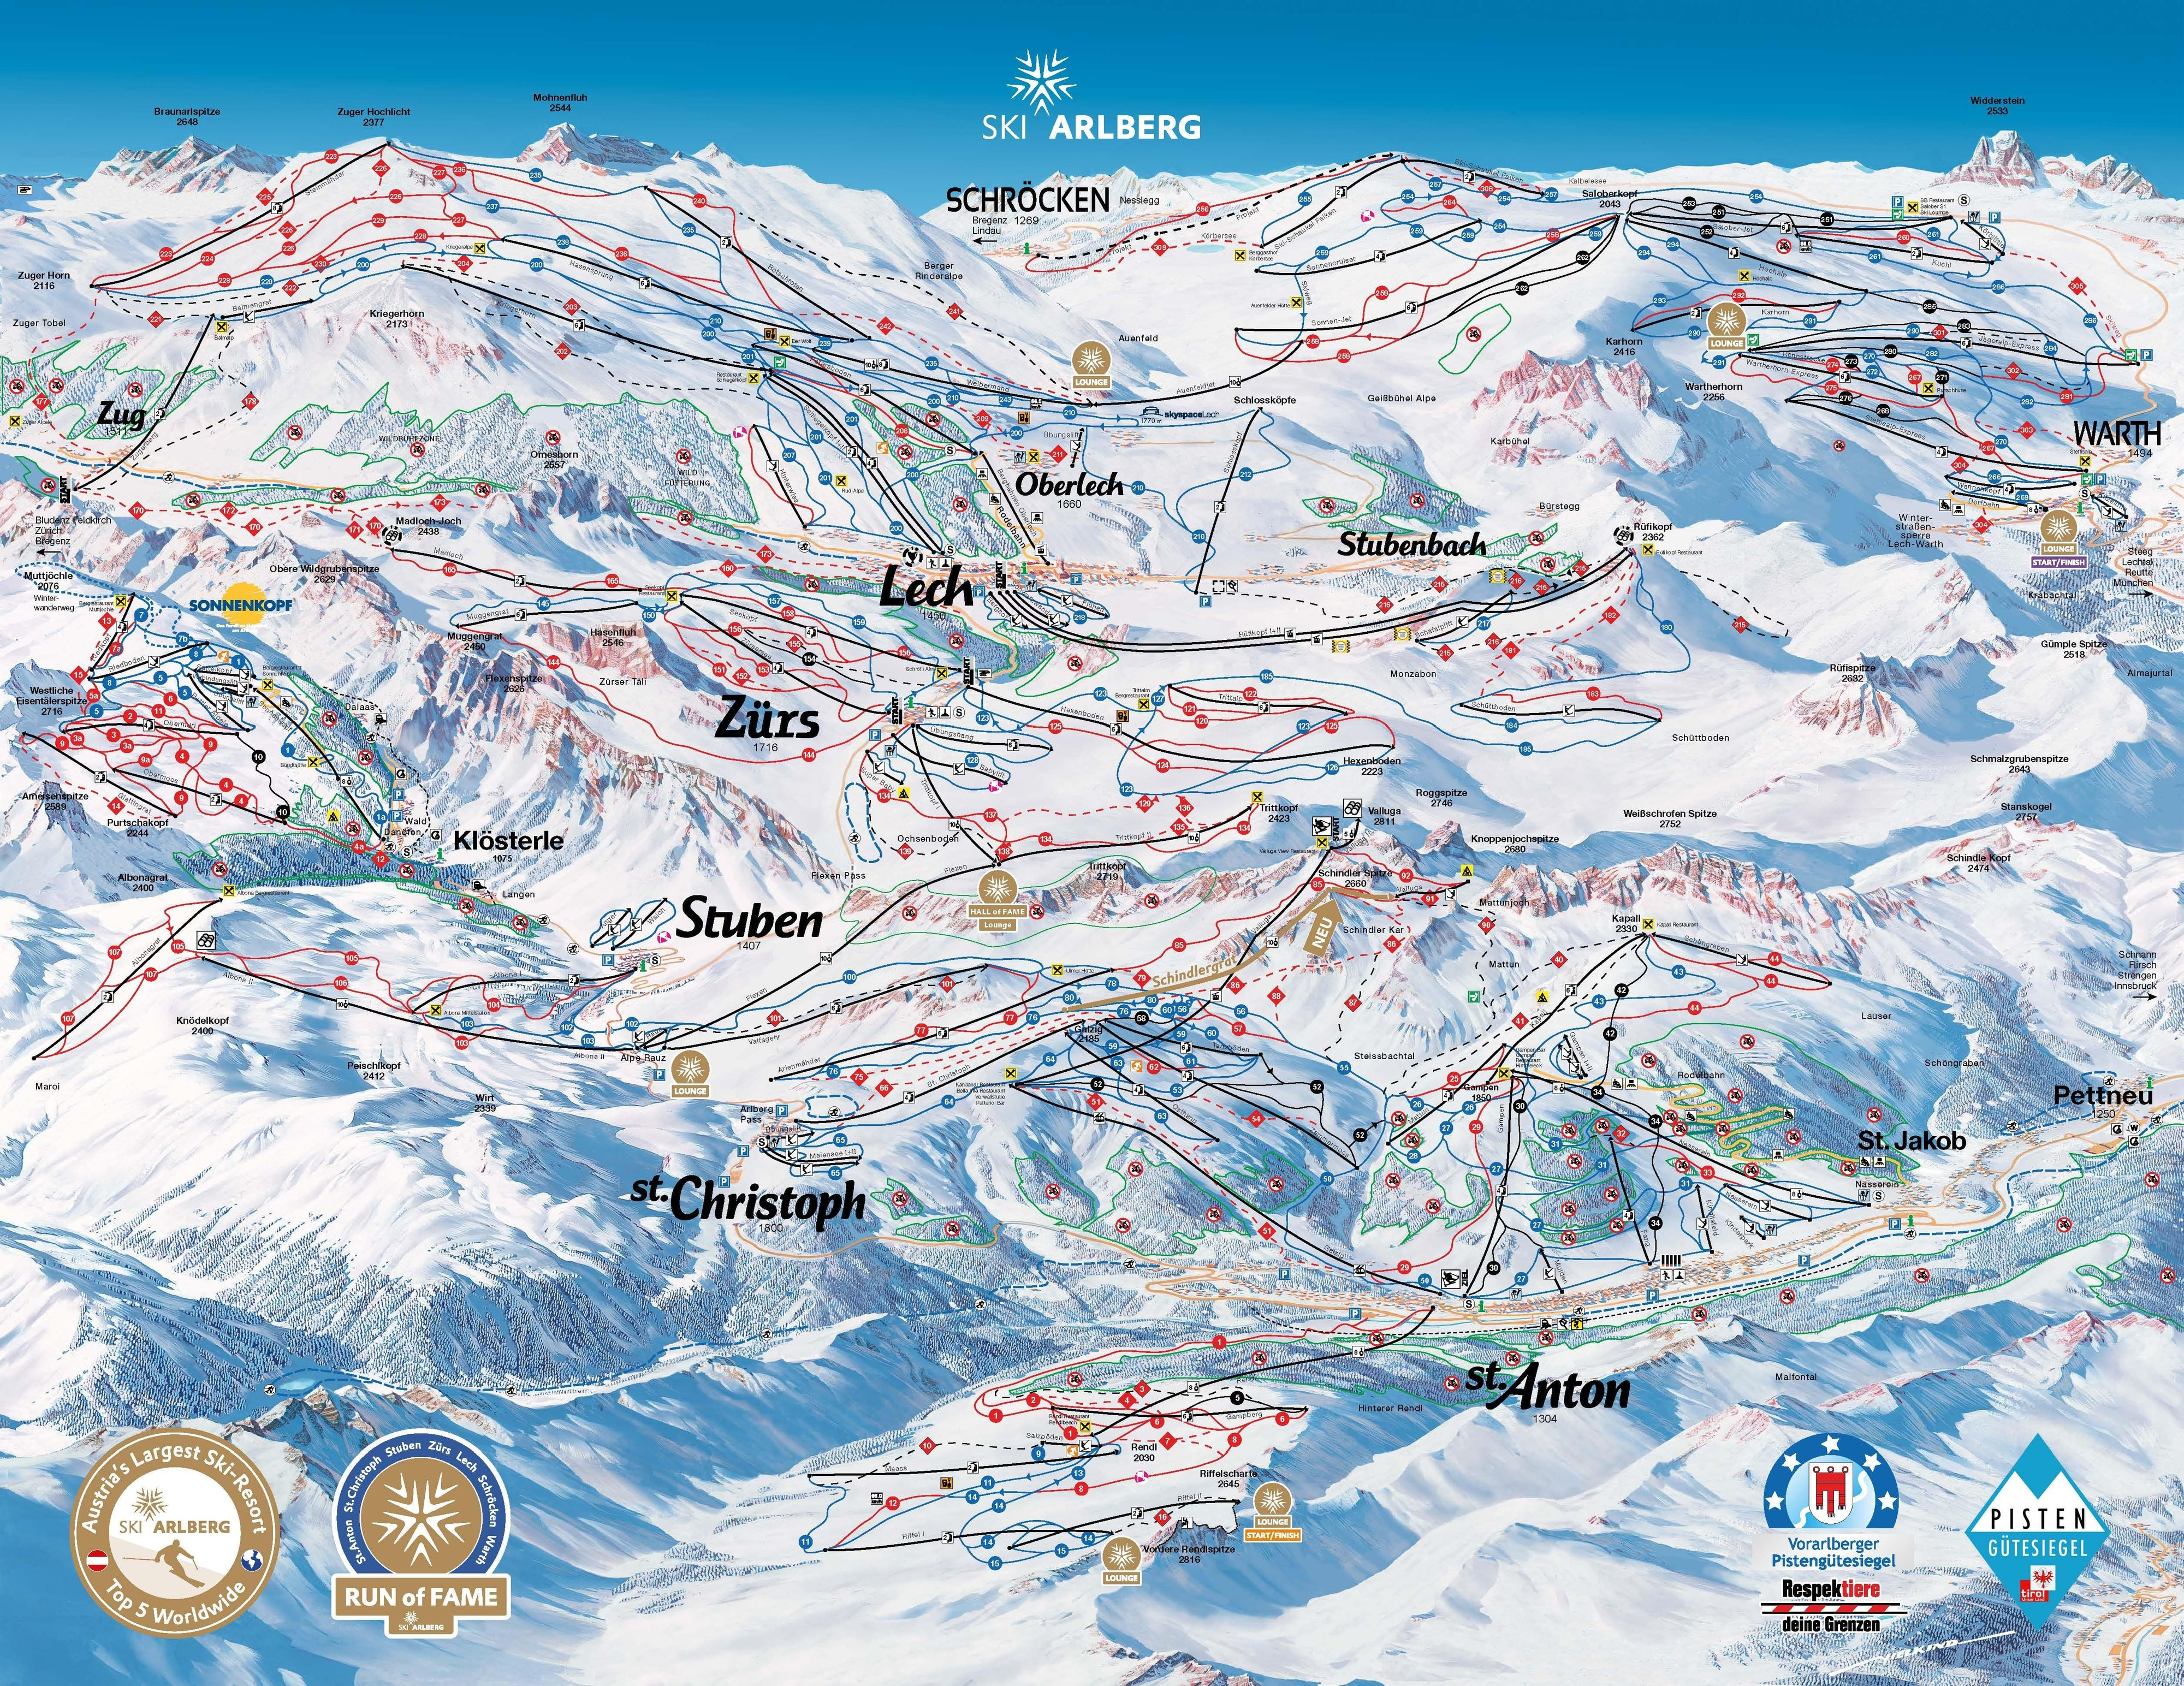 Lech Piste Map Lech Ski Resort Guide, Location Map & Lech ski holiday accommodation Lech Piste Map